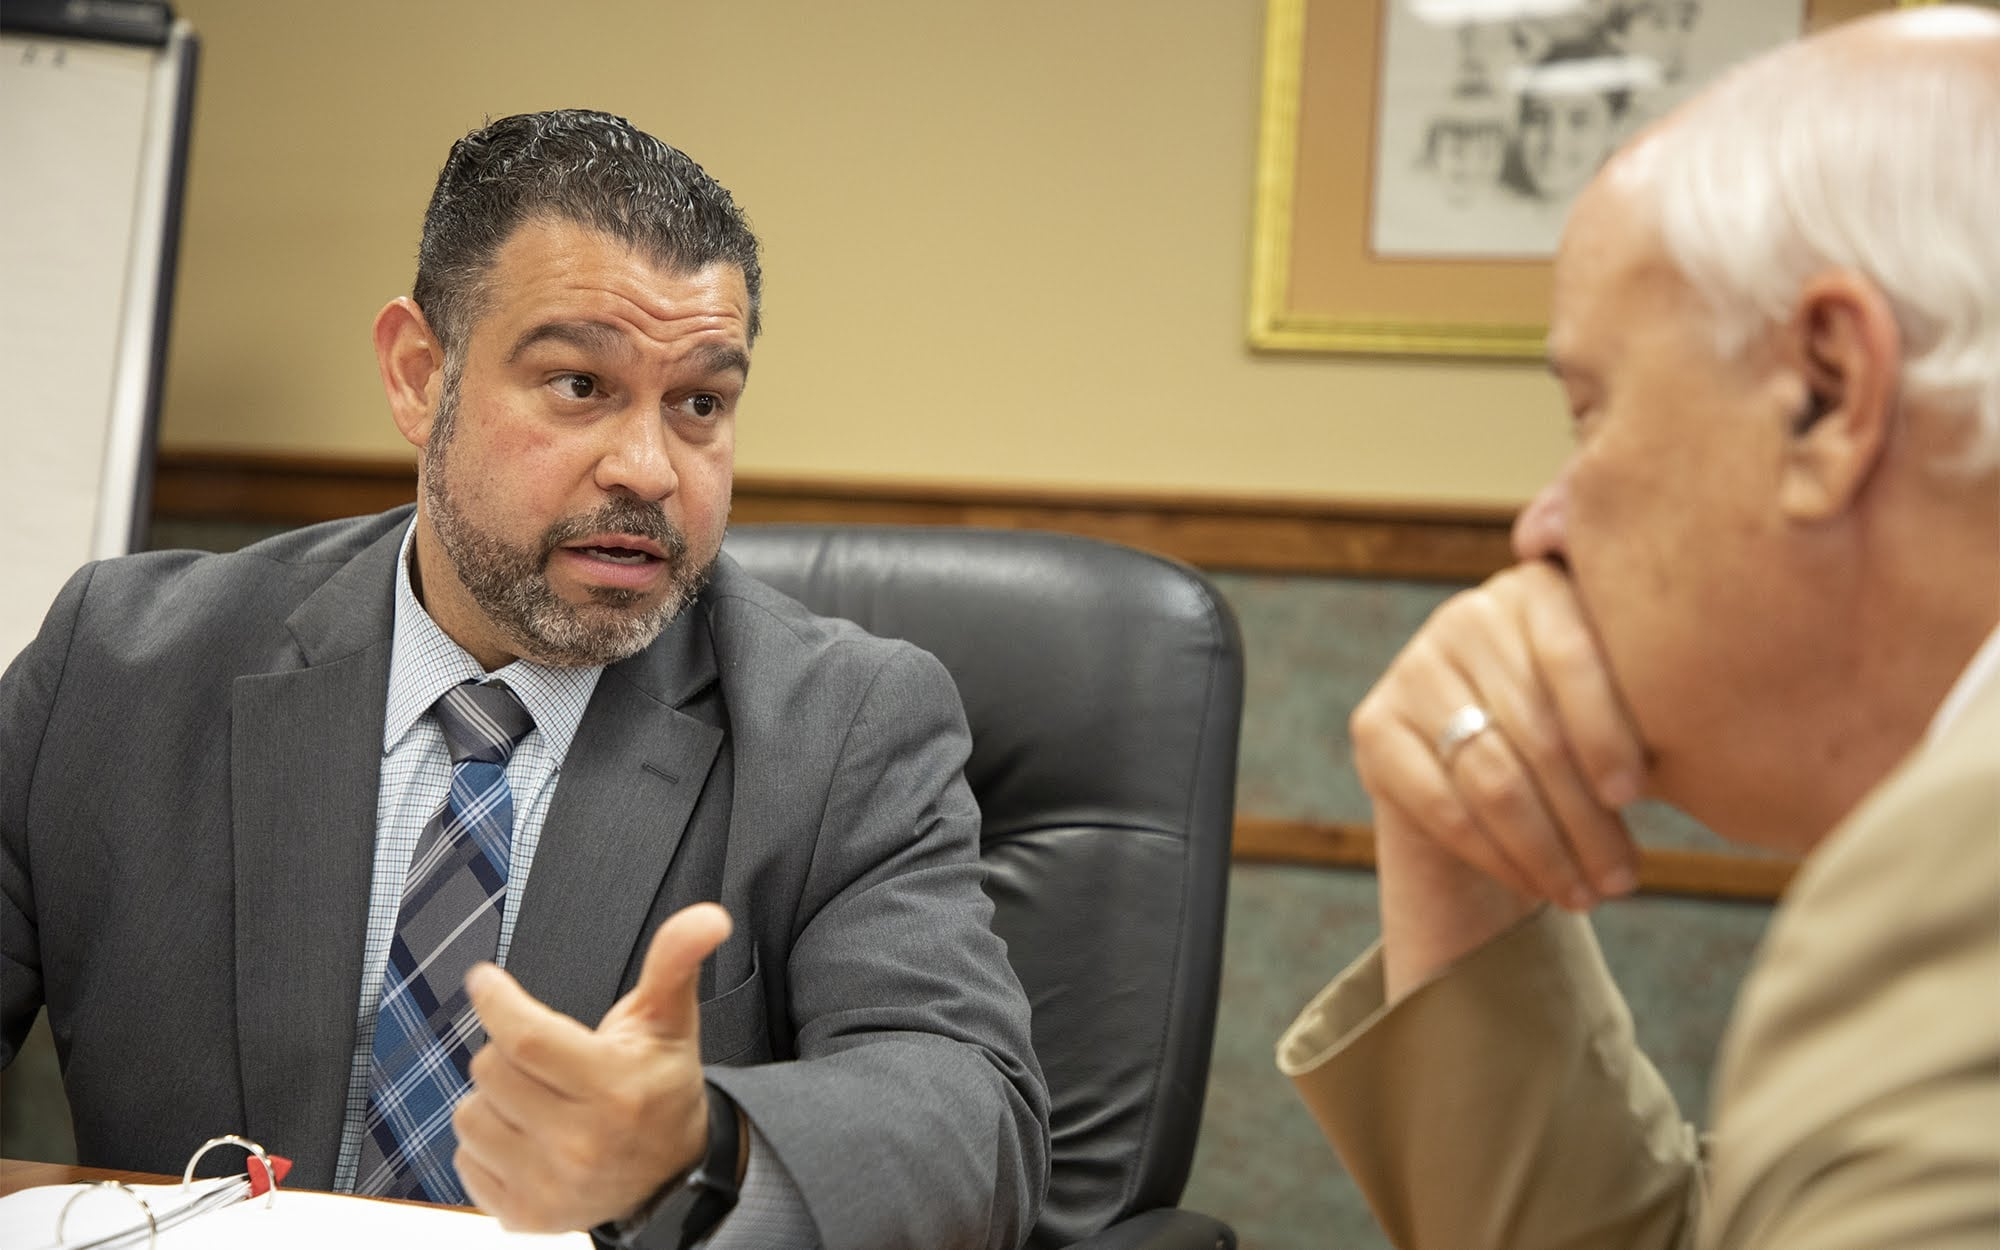 Pennsylvania Secretary of Education Pedro A. Rivera speaks with the executive director of Intermediate Unit I, Charles F. Mahoney III, at its headquarters in Coal Center, Pa., on June 12, 2018.